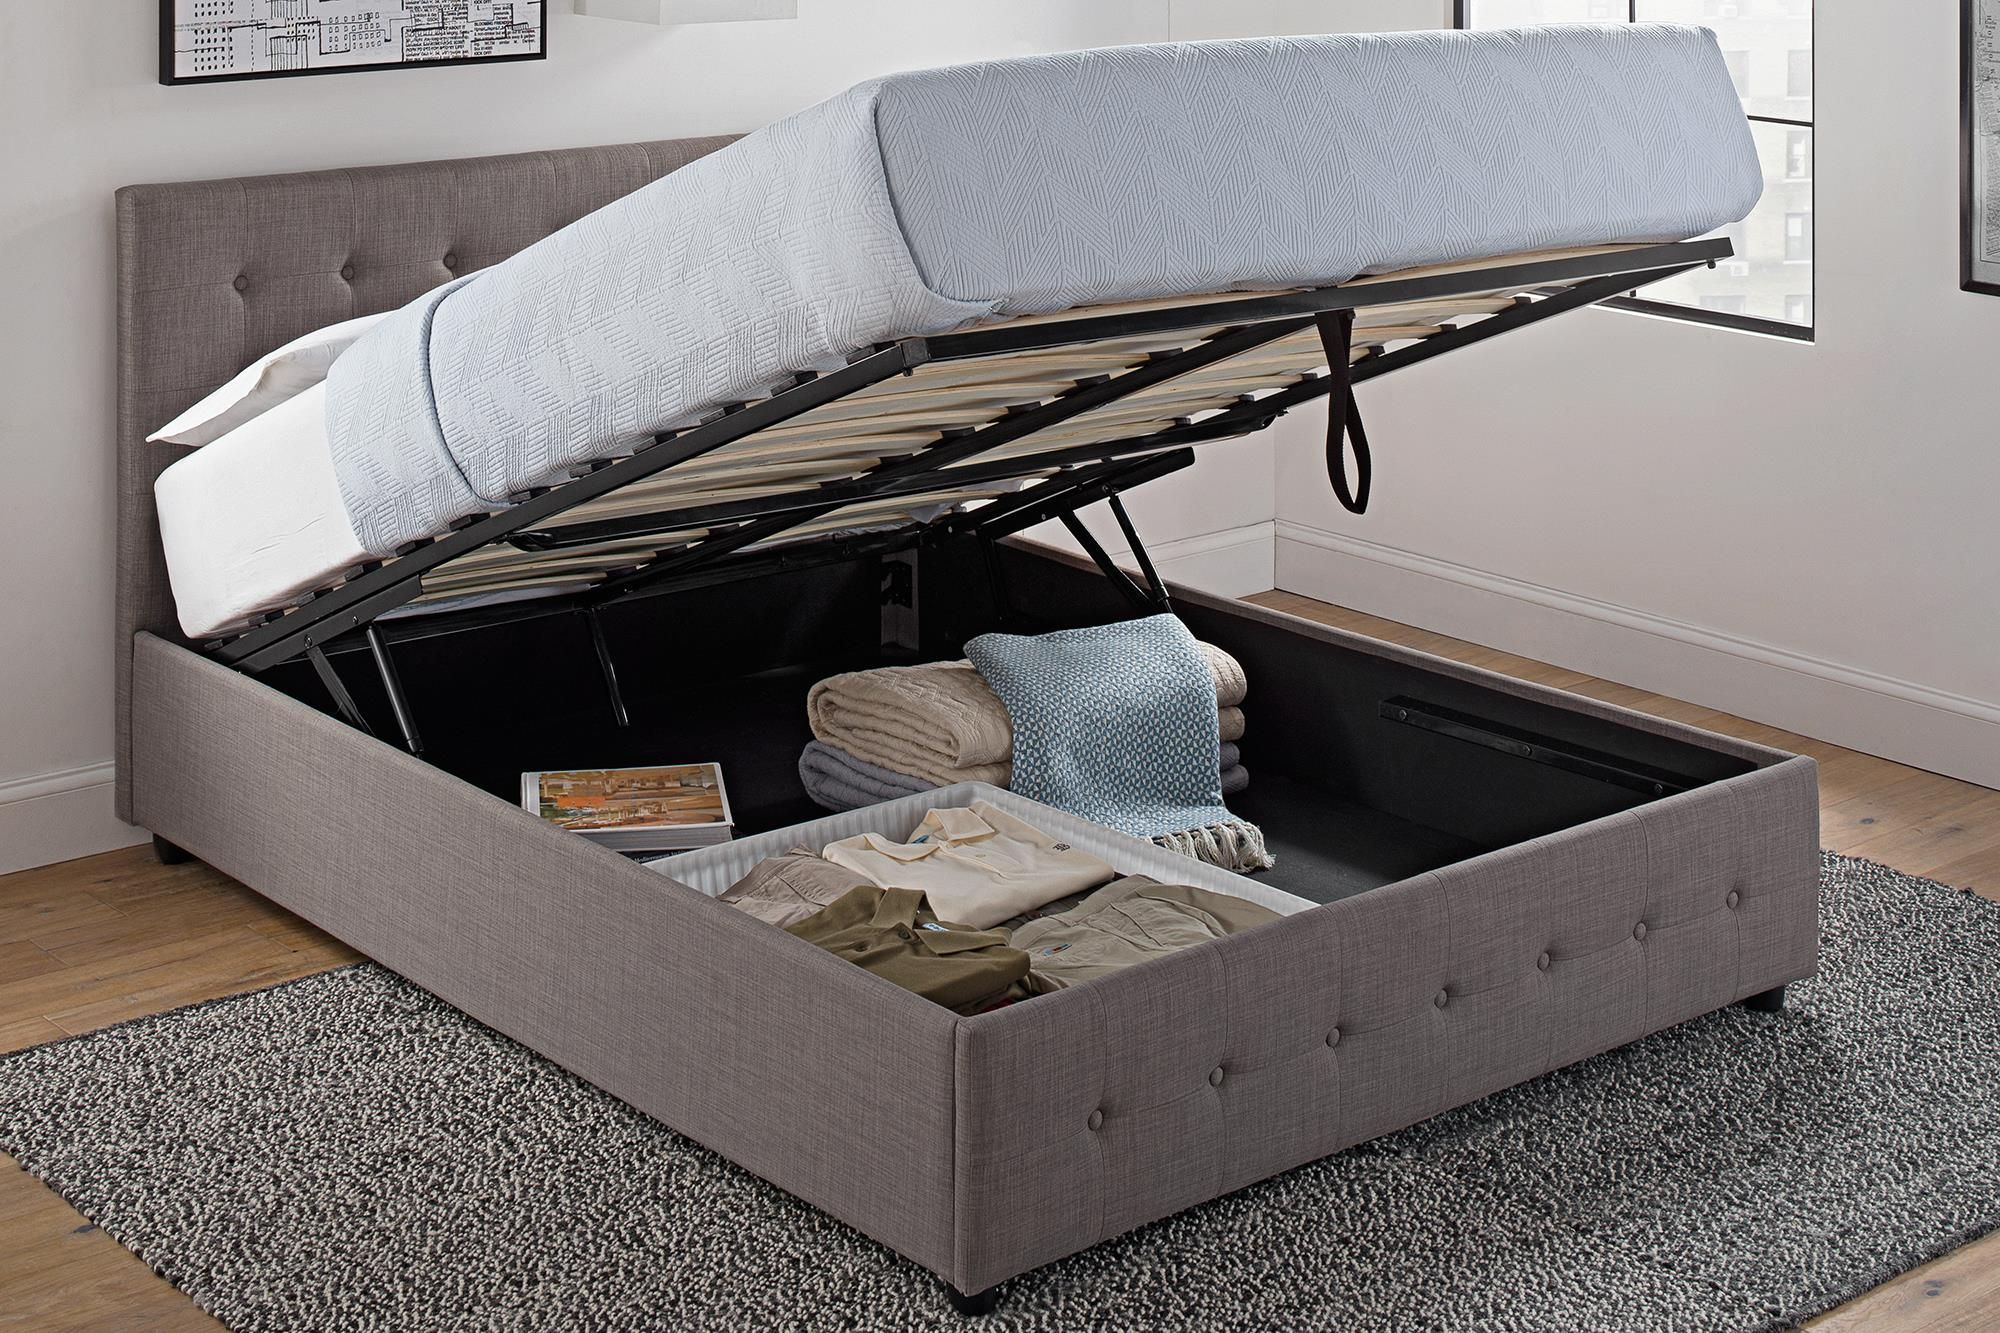 Pin on apartment ideas - Best platform beds with storage ...